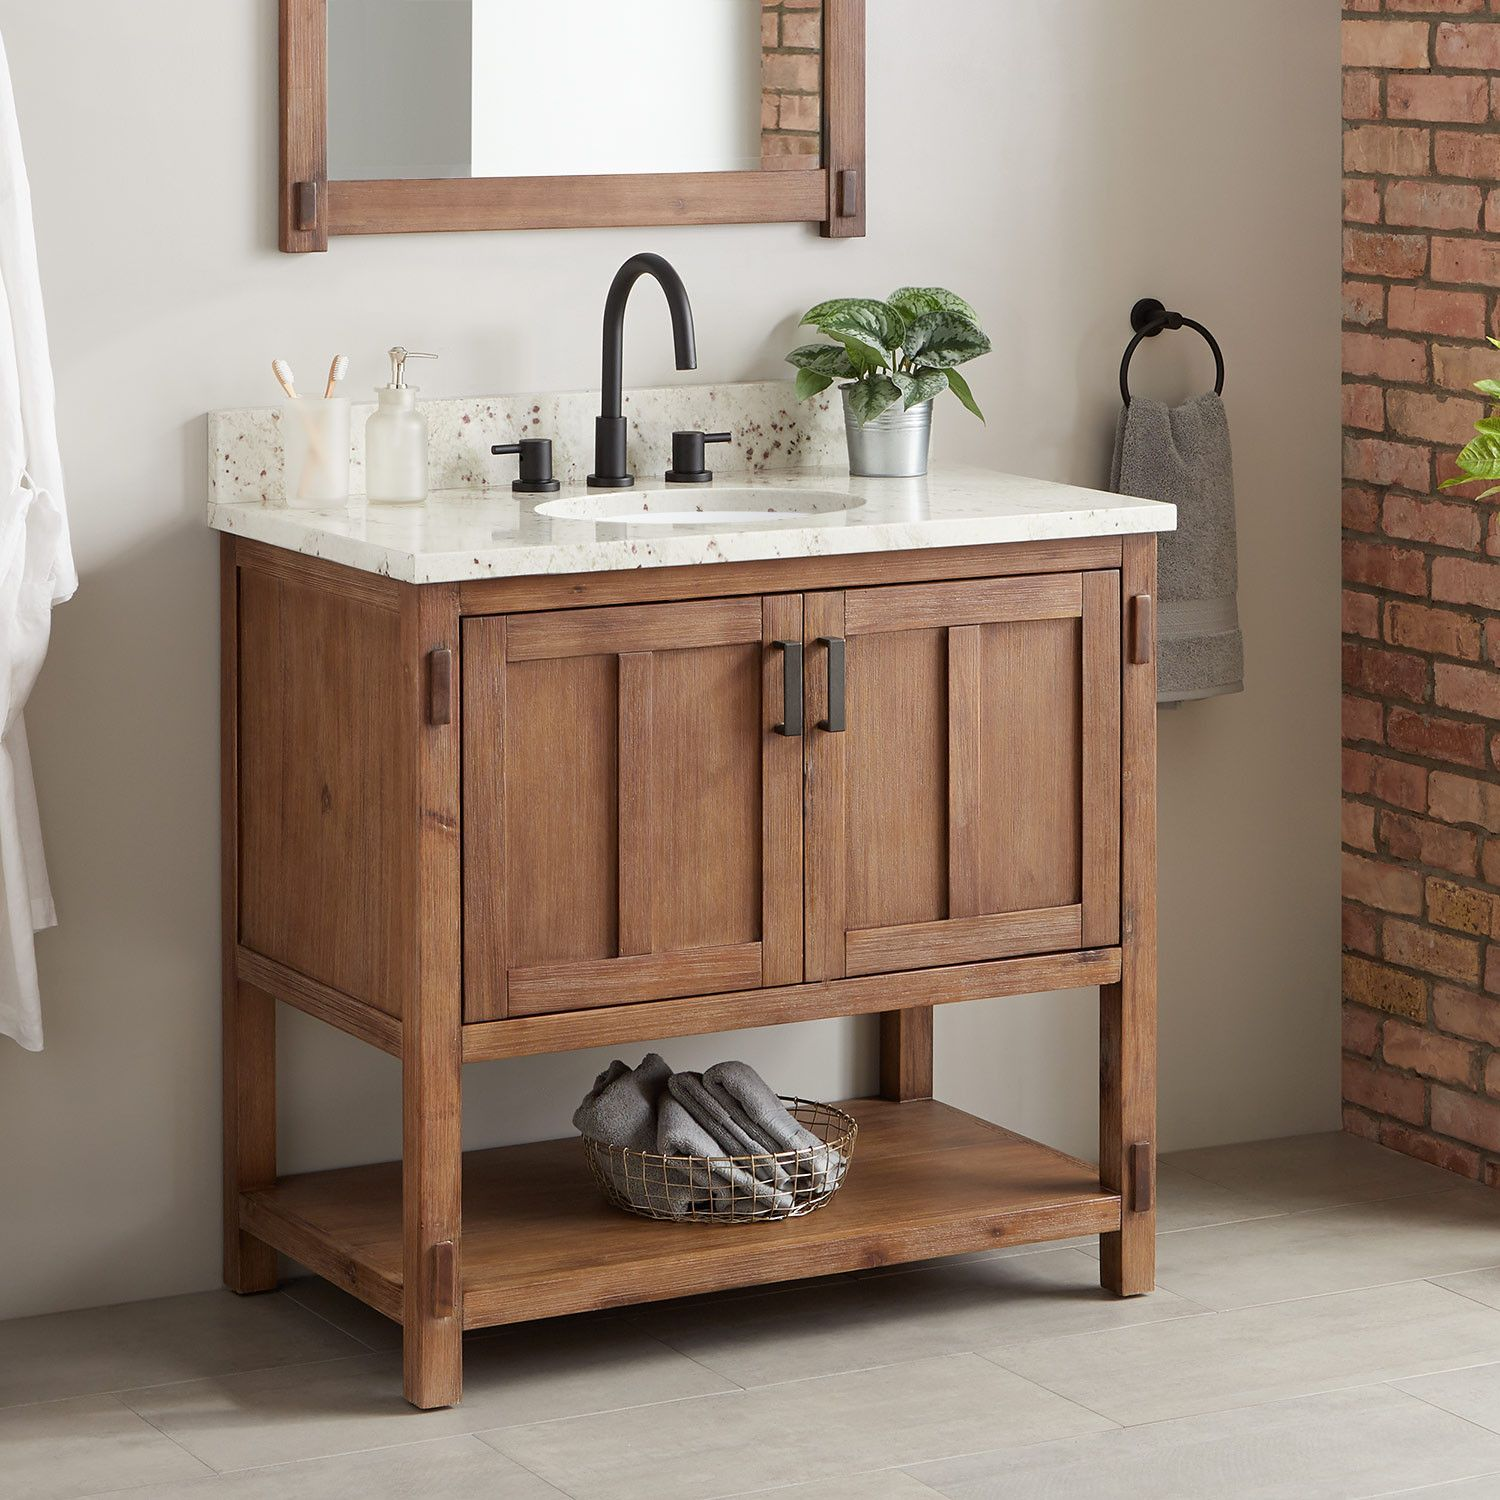 36 Morris Console Vanity For Undermount Sink Single Bathroom Vanity Wooden Bathroom Vanity Bathroom Furniture